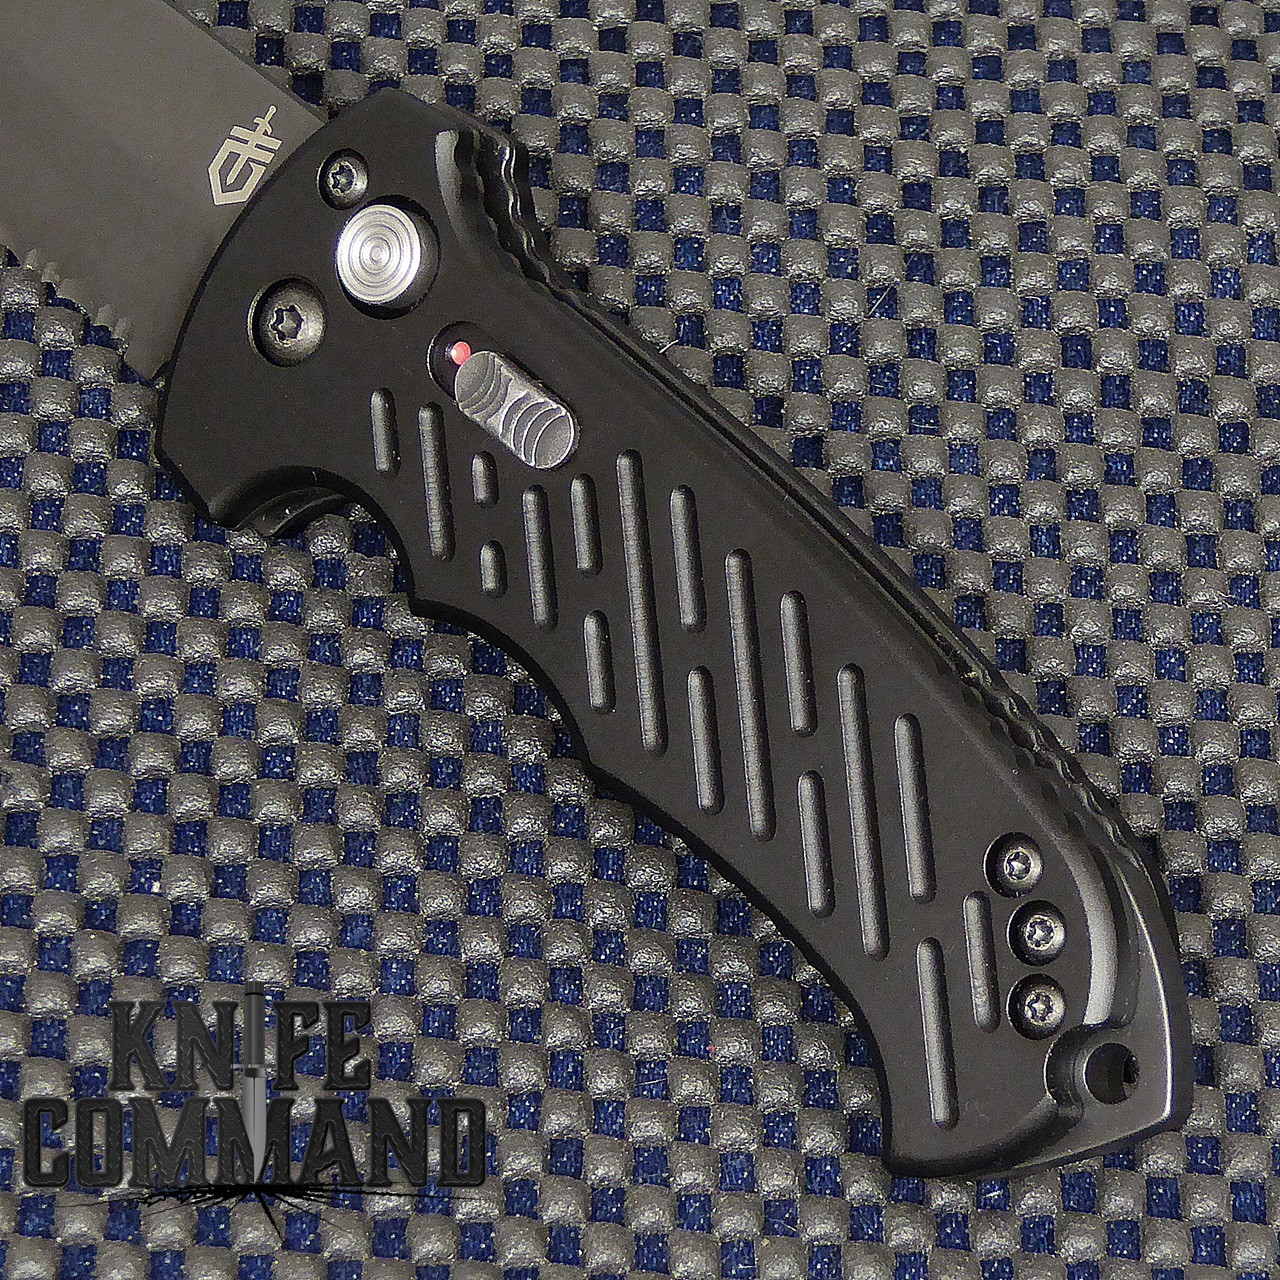 Gerber 06 Auto Tanto Blade Automatic Knife Serr 30-000850.  Extended impact point.